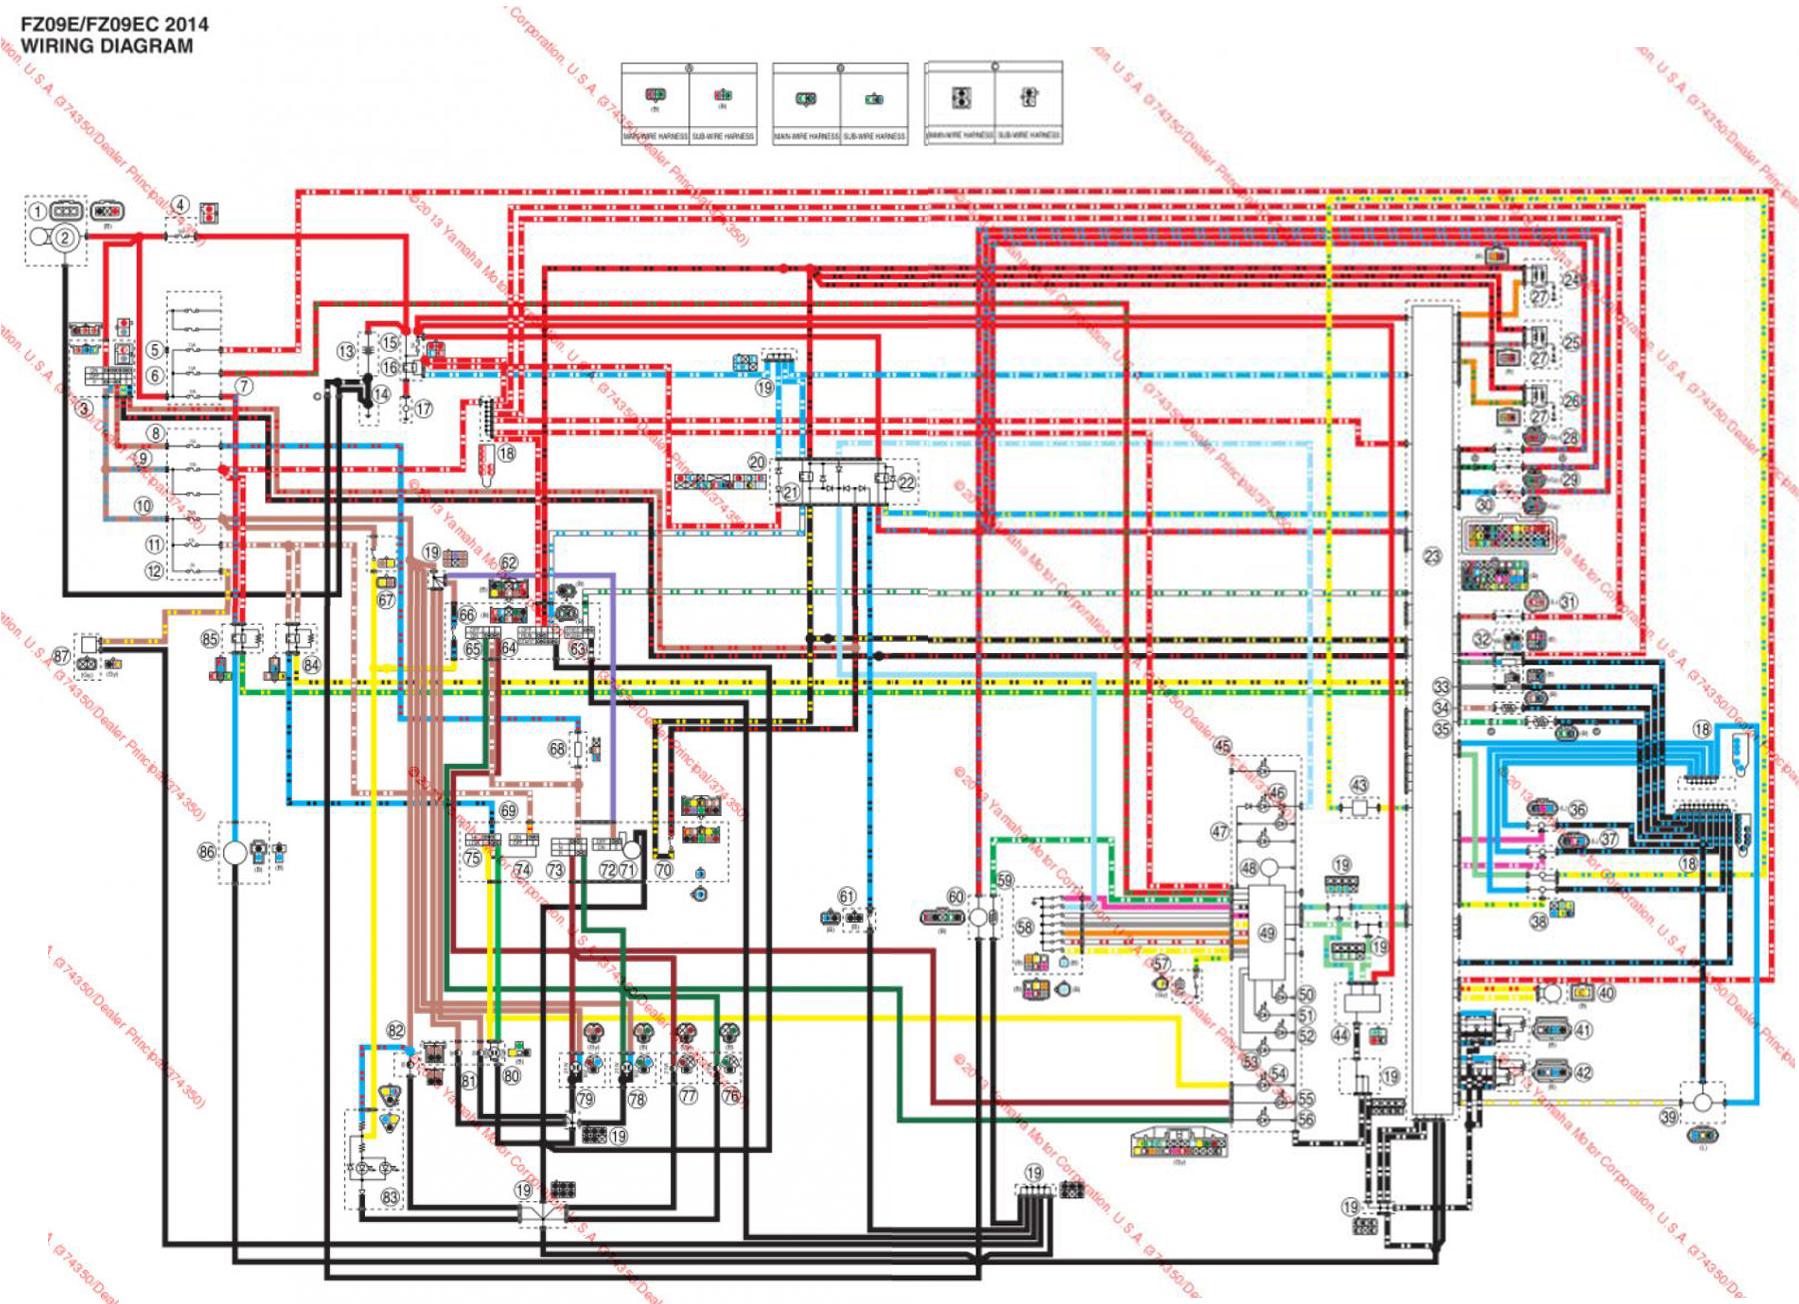 yamaha mt 09 wiring diagram - wiring diagram few-explorer-b -  few-explorer-b.pmov2019.it  pmov2019.it